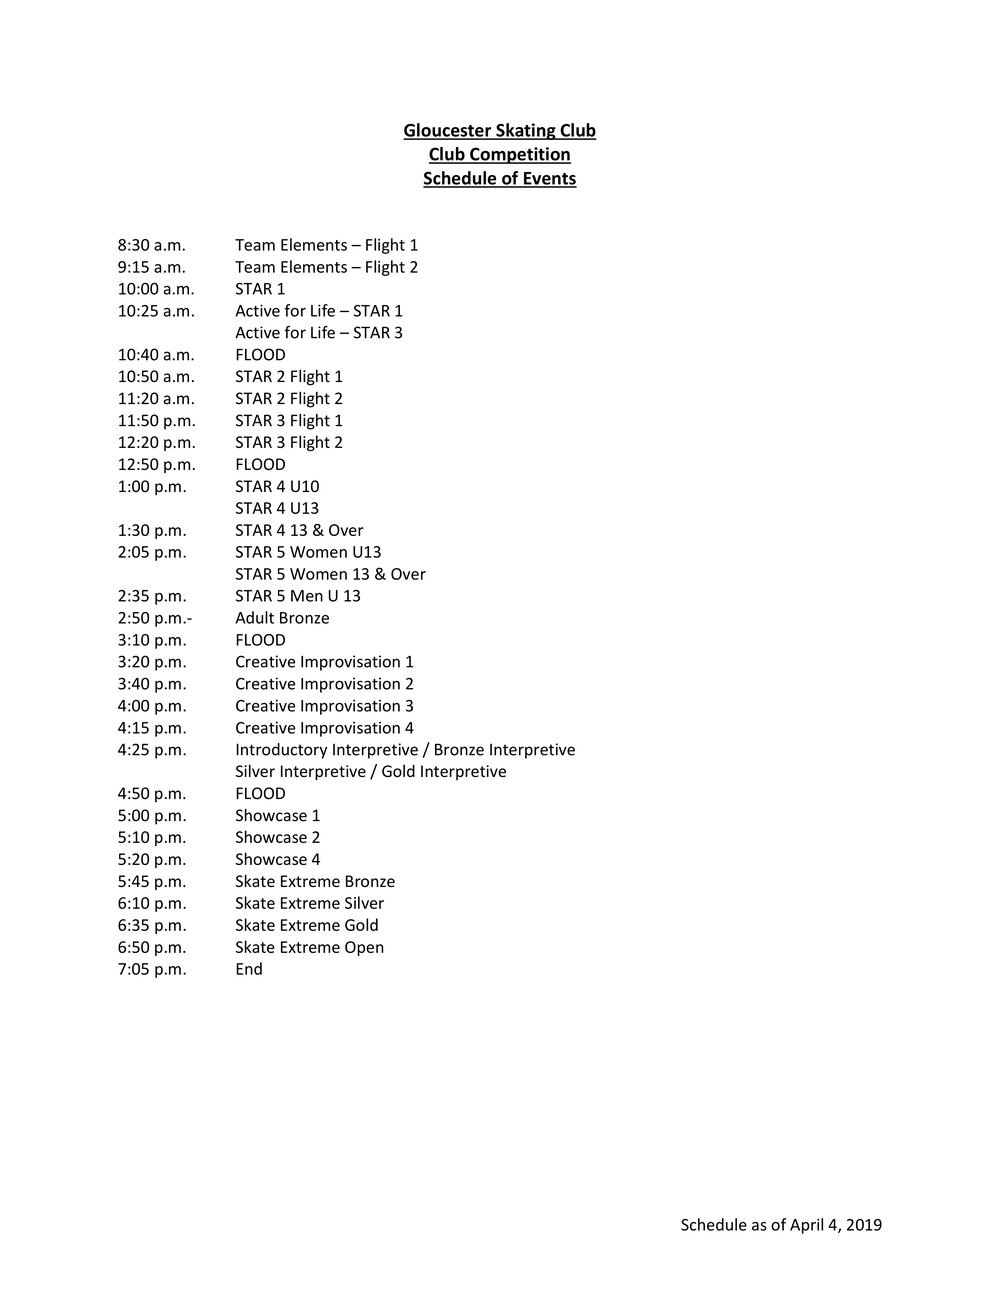 Schedule of Events - GSC Club Competition - April 2019 0 20190403.jpg